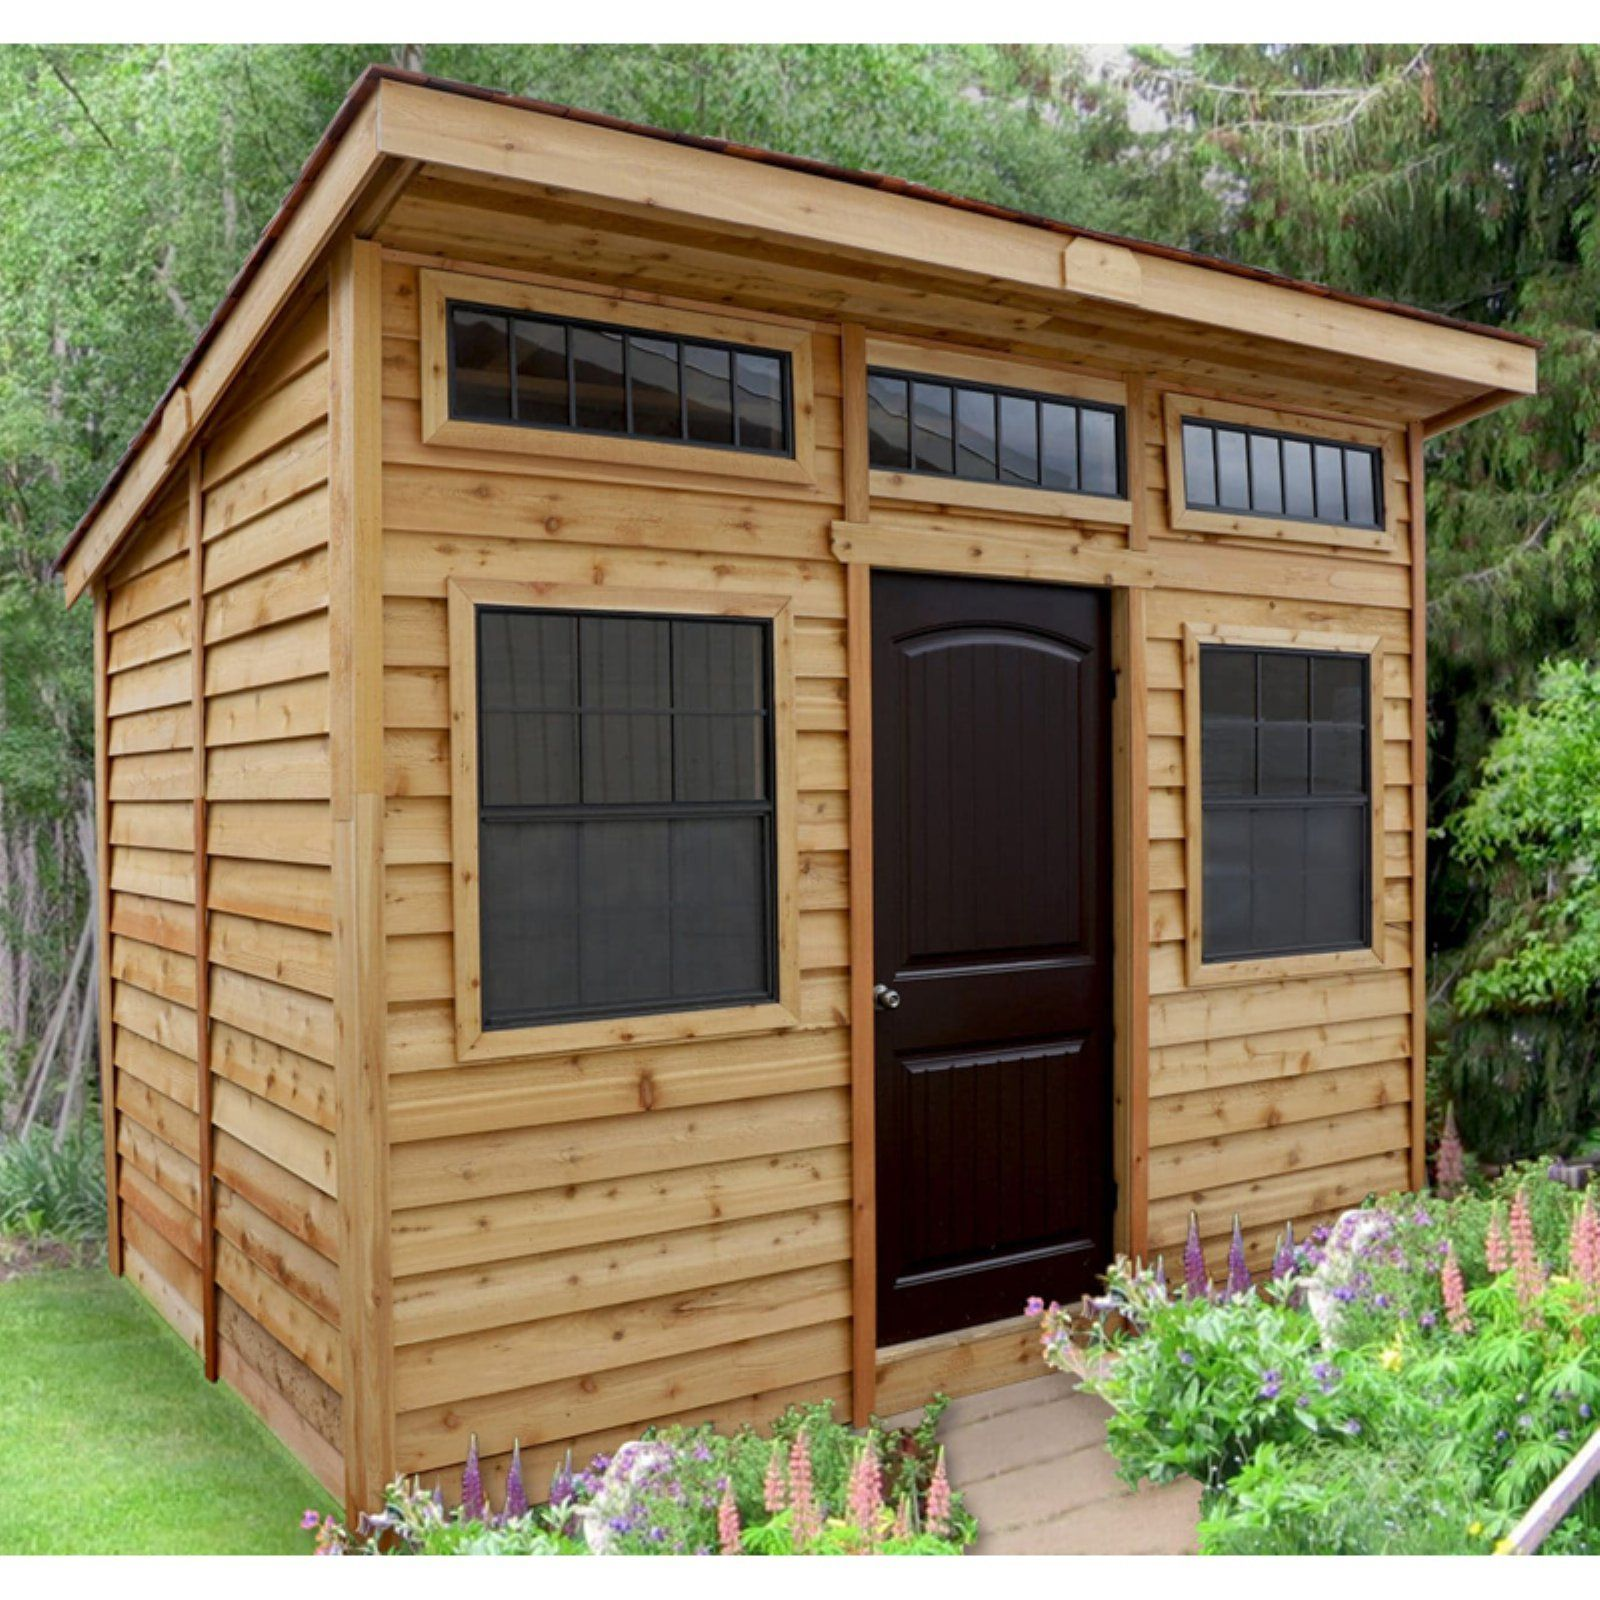 Outdoor Living Today Studio 12 X 8 Ft Garden Shed In 2020 Shed Design Building A Shed Diy Shed Plans